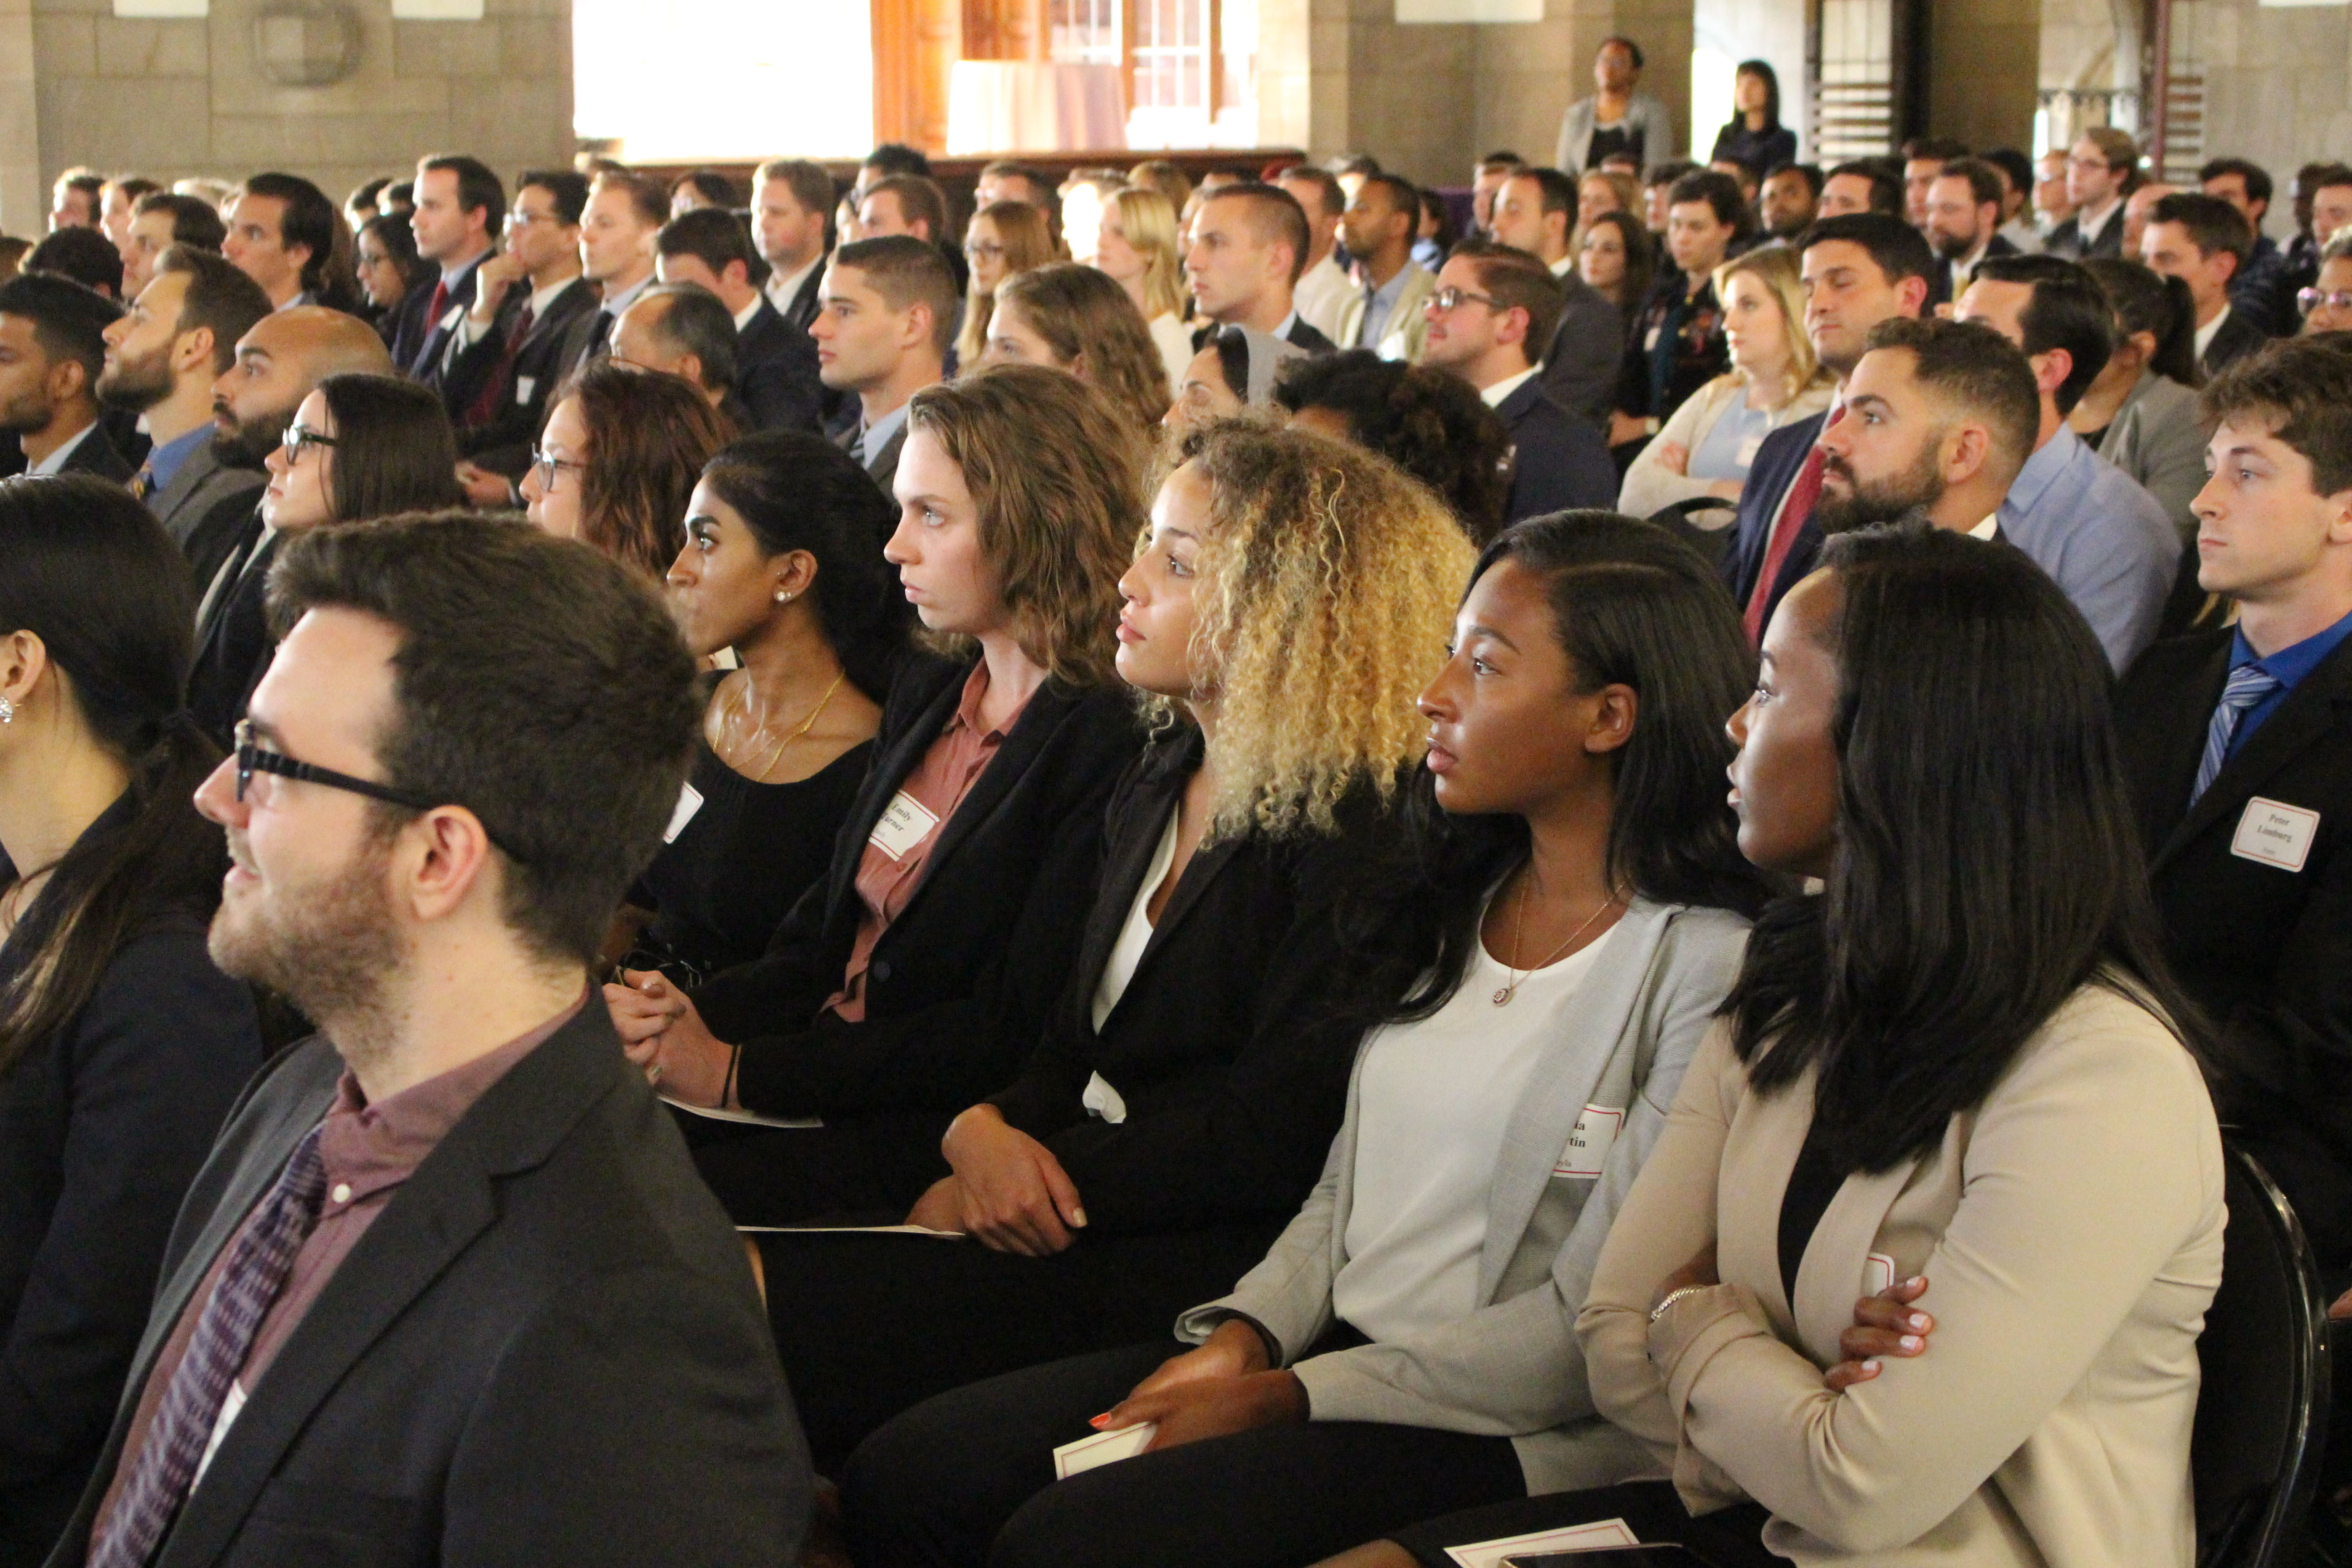 Temple Law students at the Temple Law New Student Orientation Pledge Ceremony in August of 2018 in Mitten Hall.